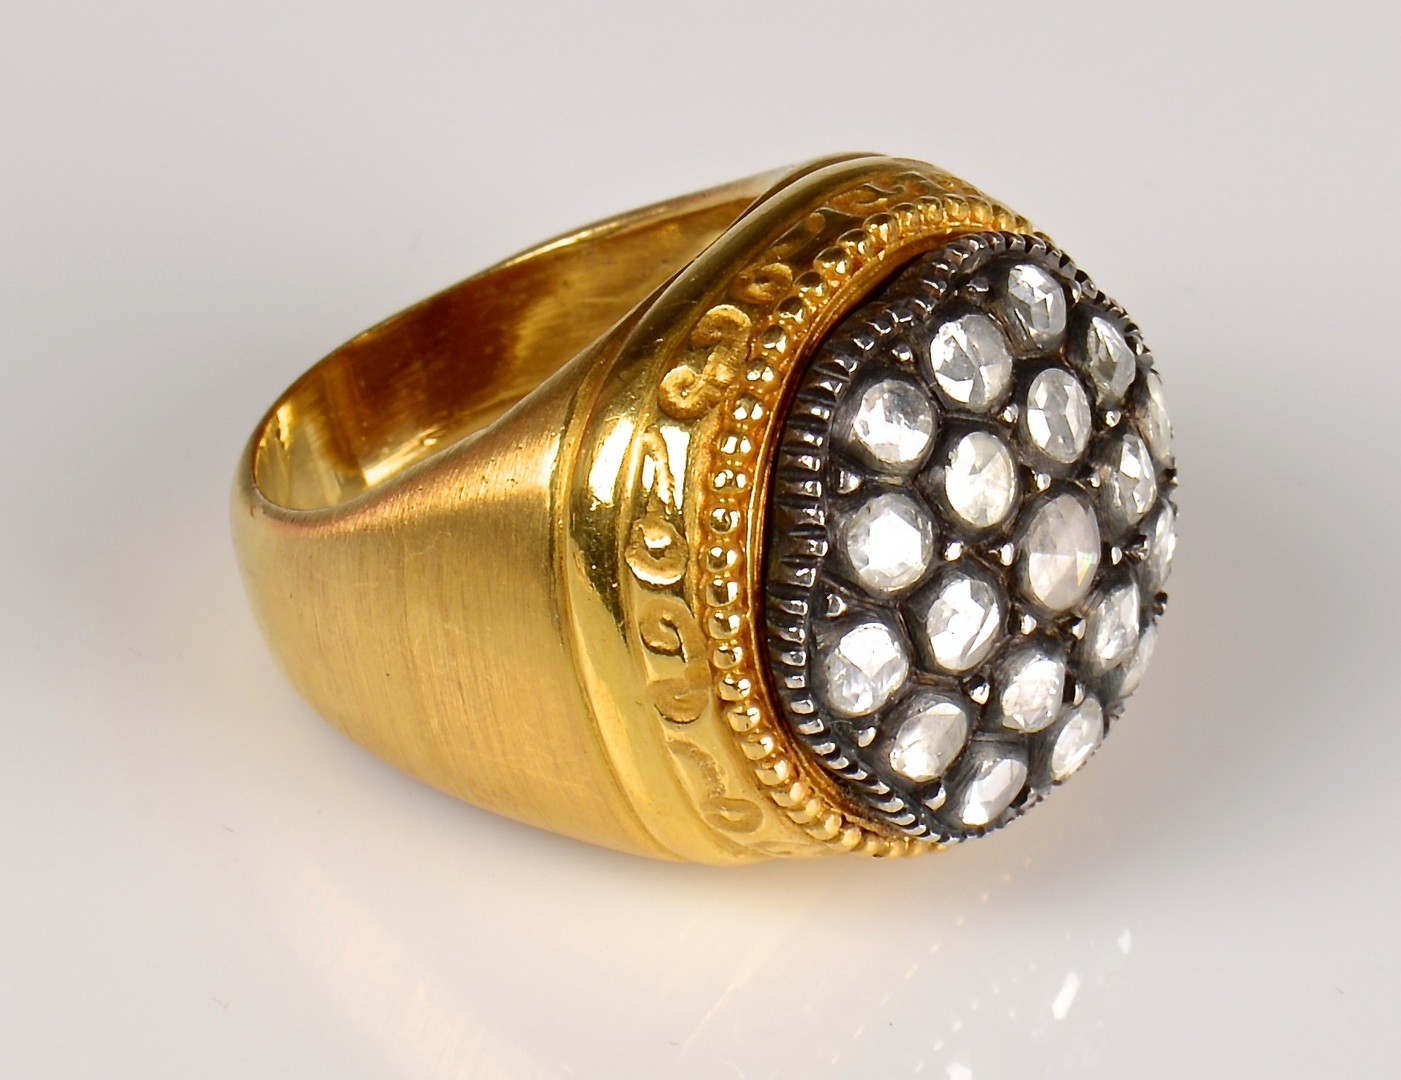 Lot 63: 22K Etruscan style Ring with Rose Cut Diamonds